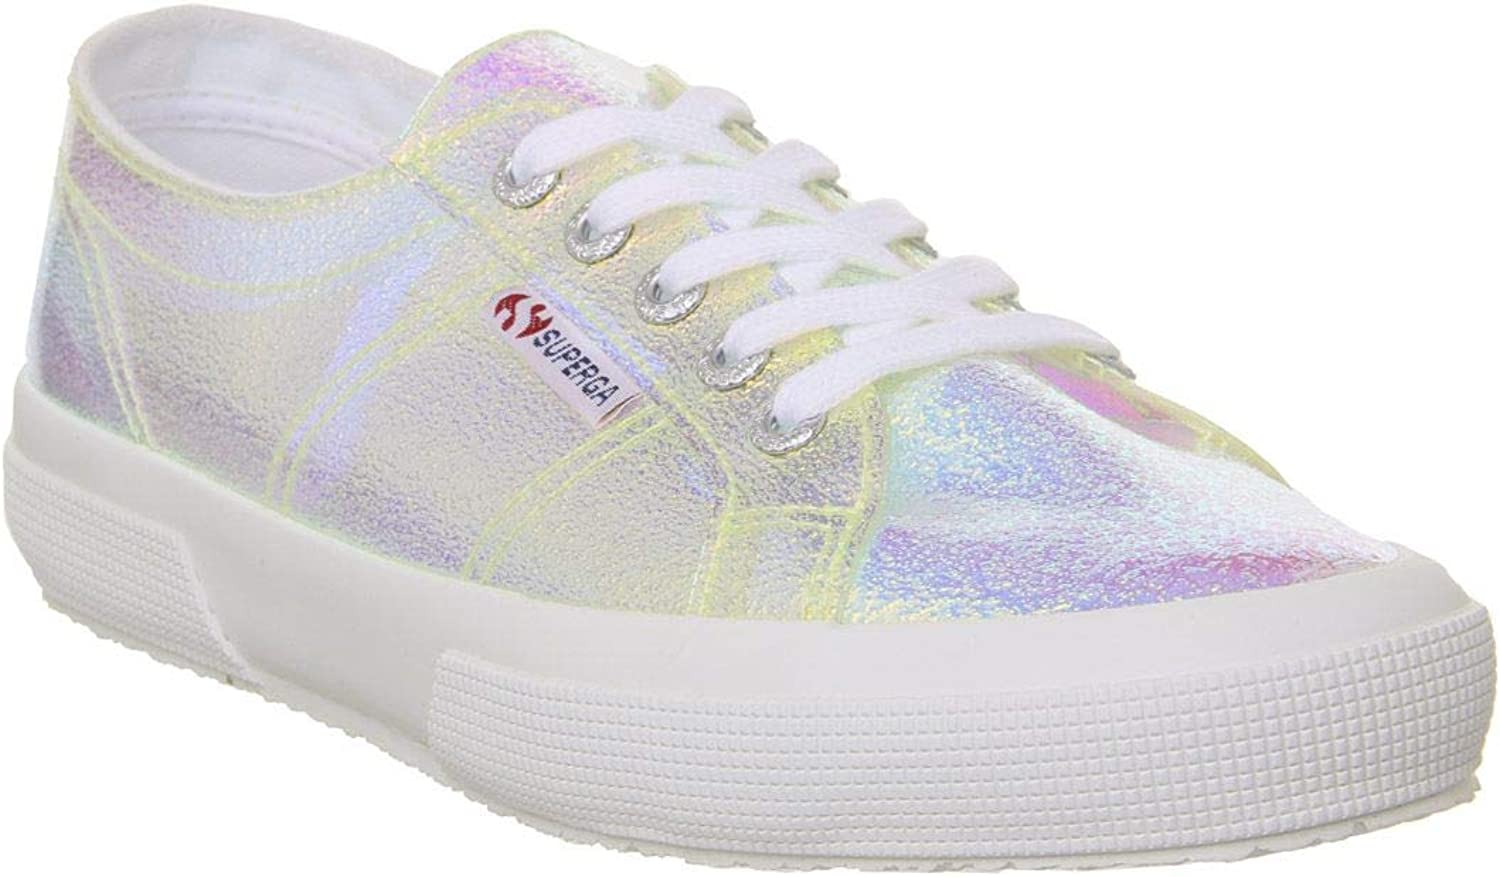 Superga Women's 2750-Crack Iridescent Lace Up Trainer Multi